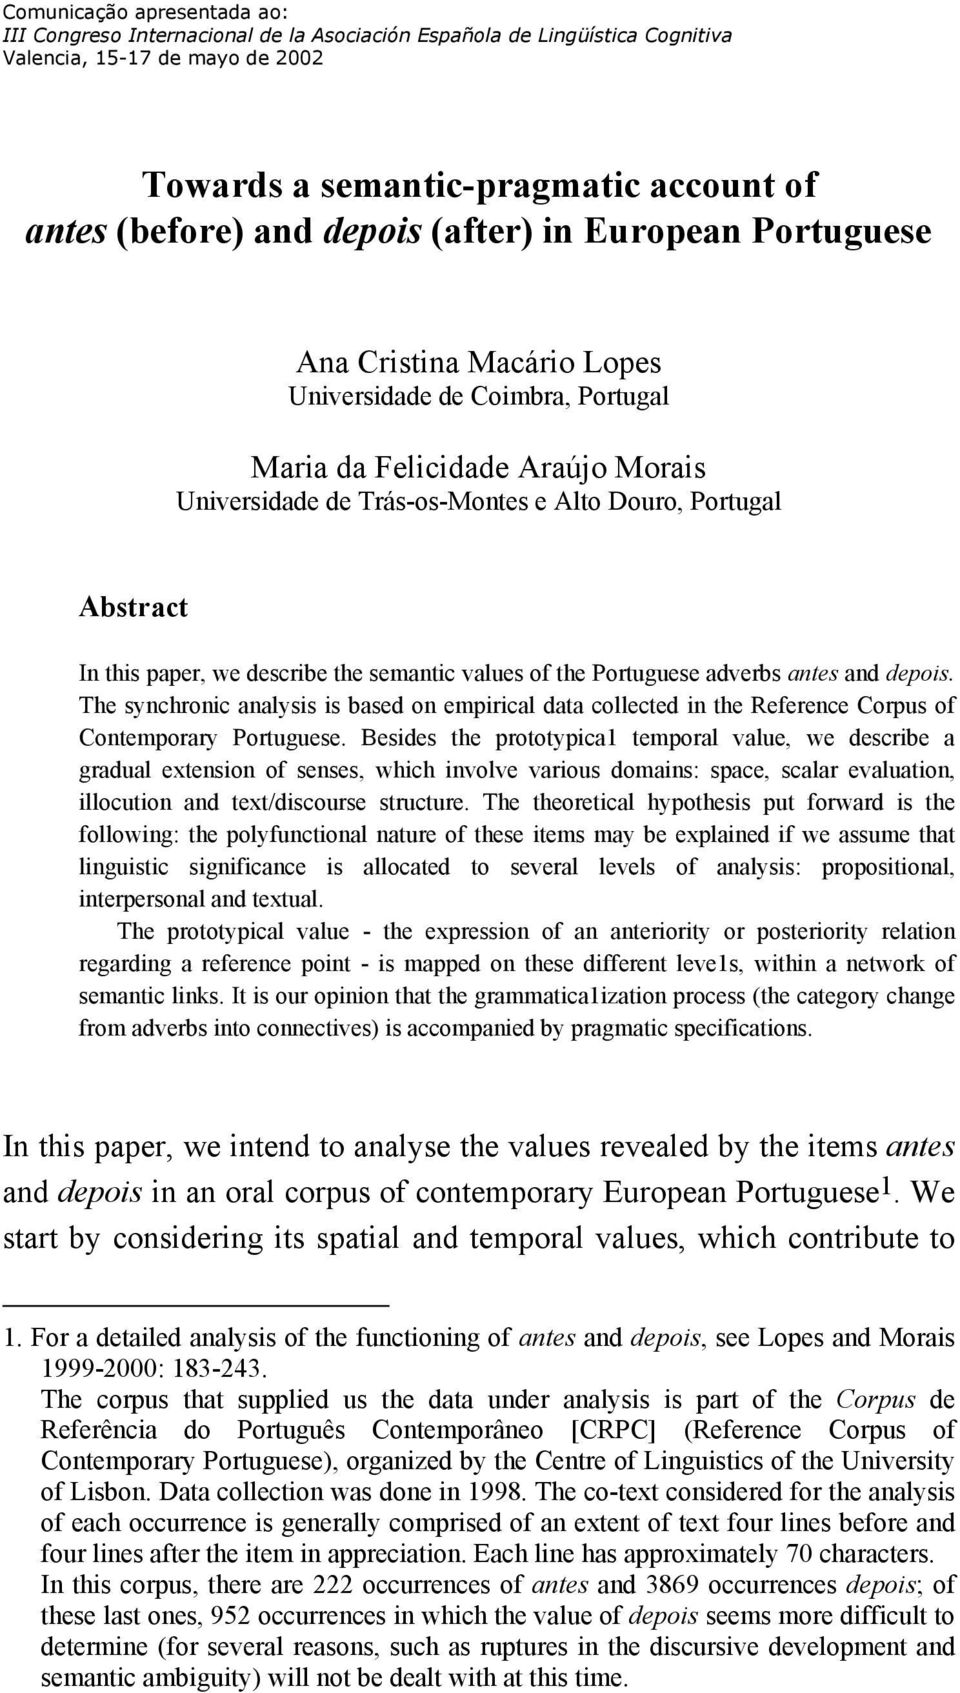 this paper, we describe the semantic values of the Portuguese adverbs antes and depois. The synchronic analysis is based on empirical data collected in the Reference Corpus of Contemporary Portuguese.